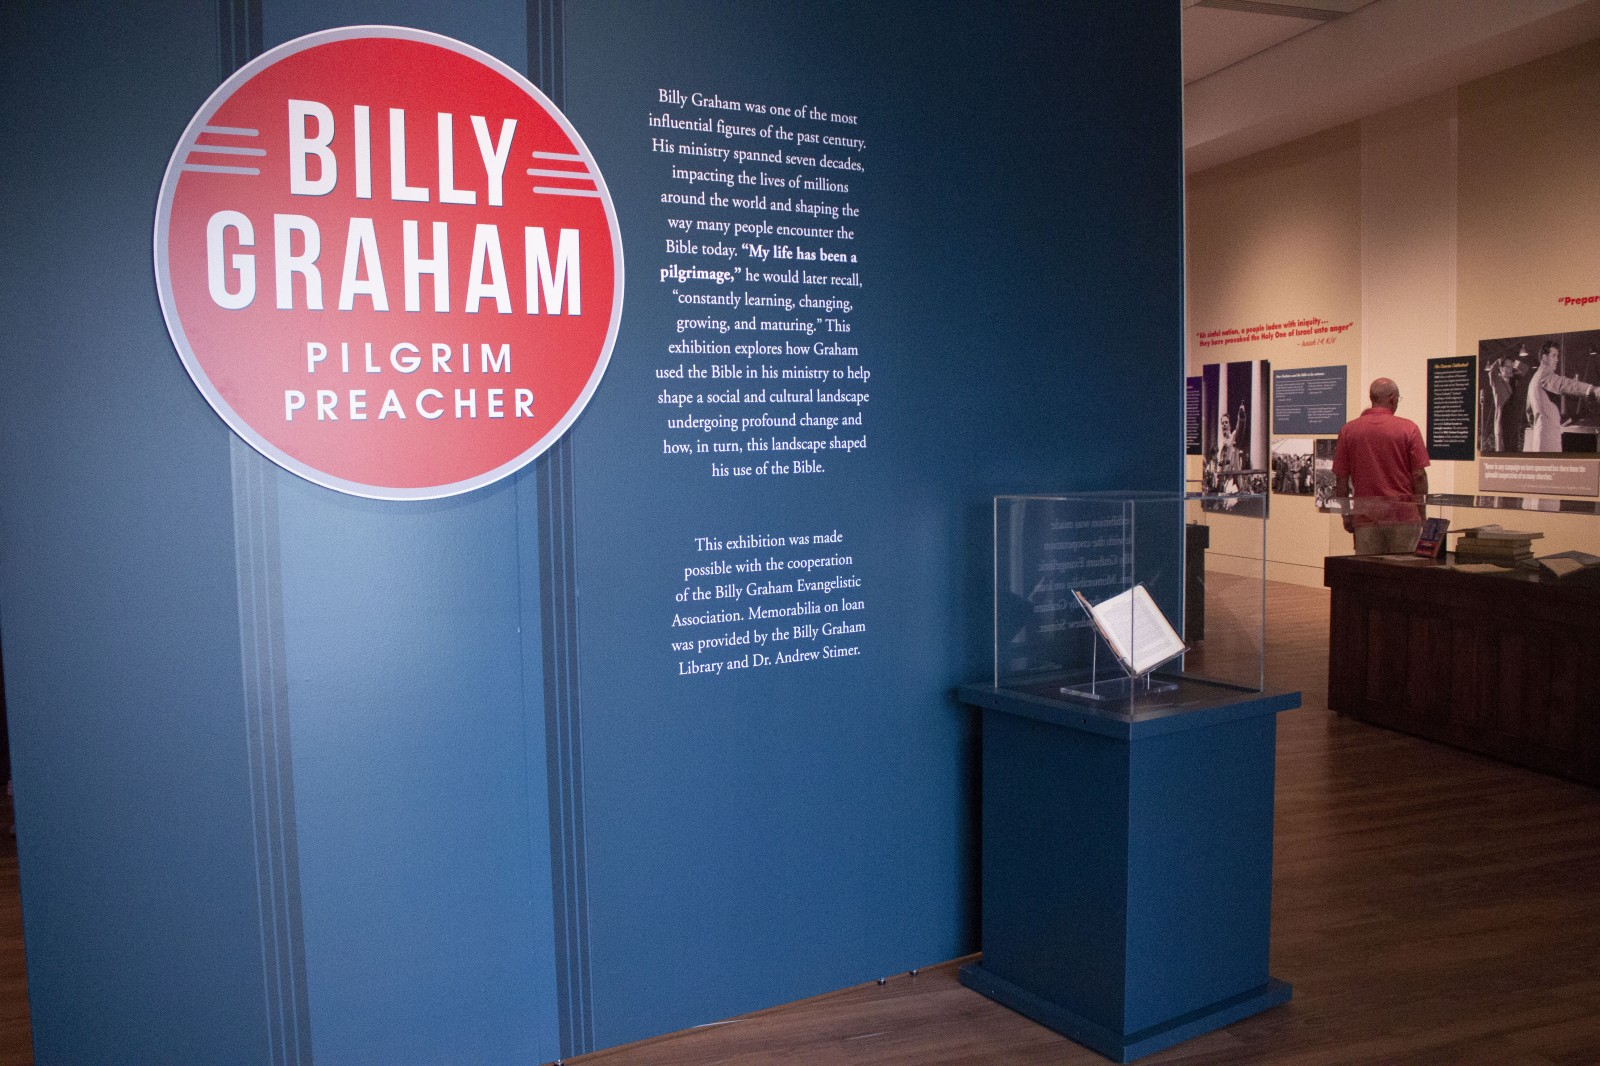 Museum of the Bible's temporary exhibit titled Pilgrim Preacher: Billy Graham, the Bible and the Challenges of the Modern World is located on the museum's fifth floor and runs through Jan. 27, 2019.